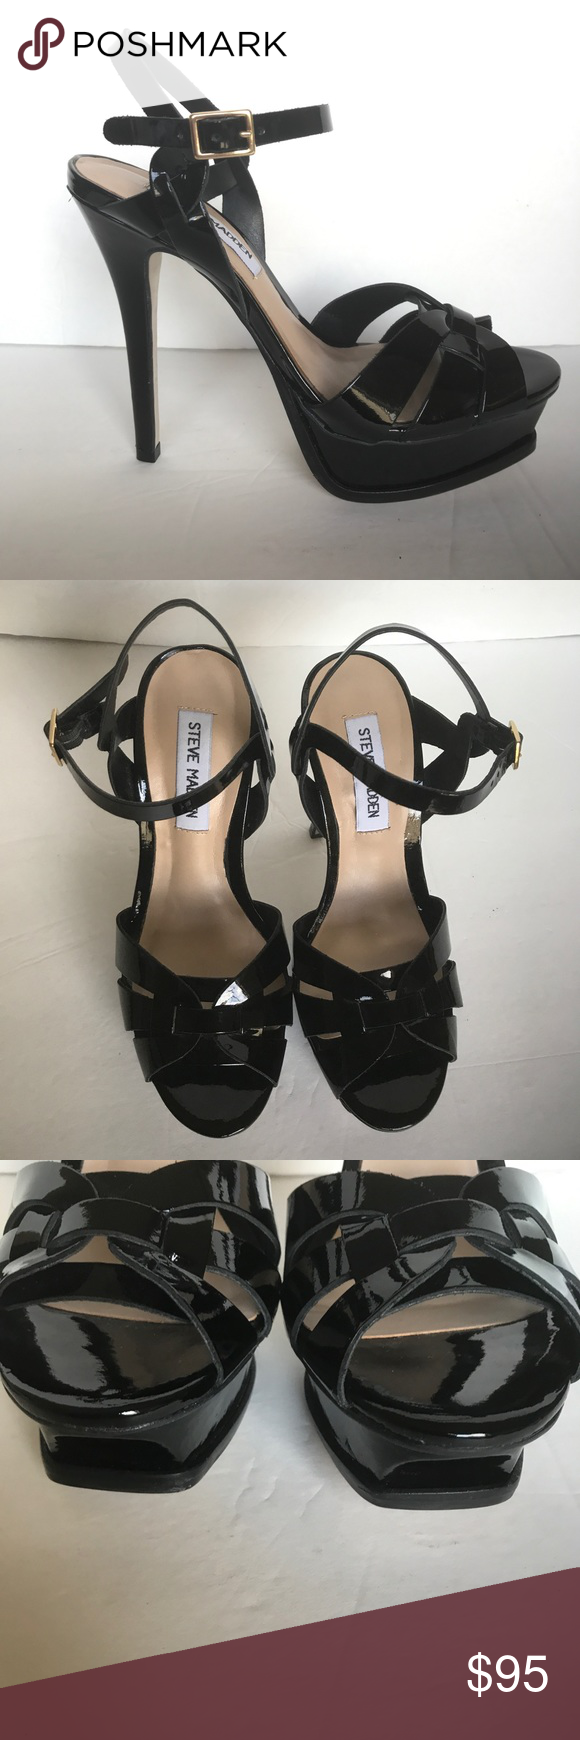 c2e991ae1b0a Steve Madden Kananda Black Patent Leather Heels 7 These Steve Madden Womens Kananda  Blush Patent Leather